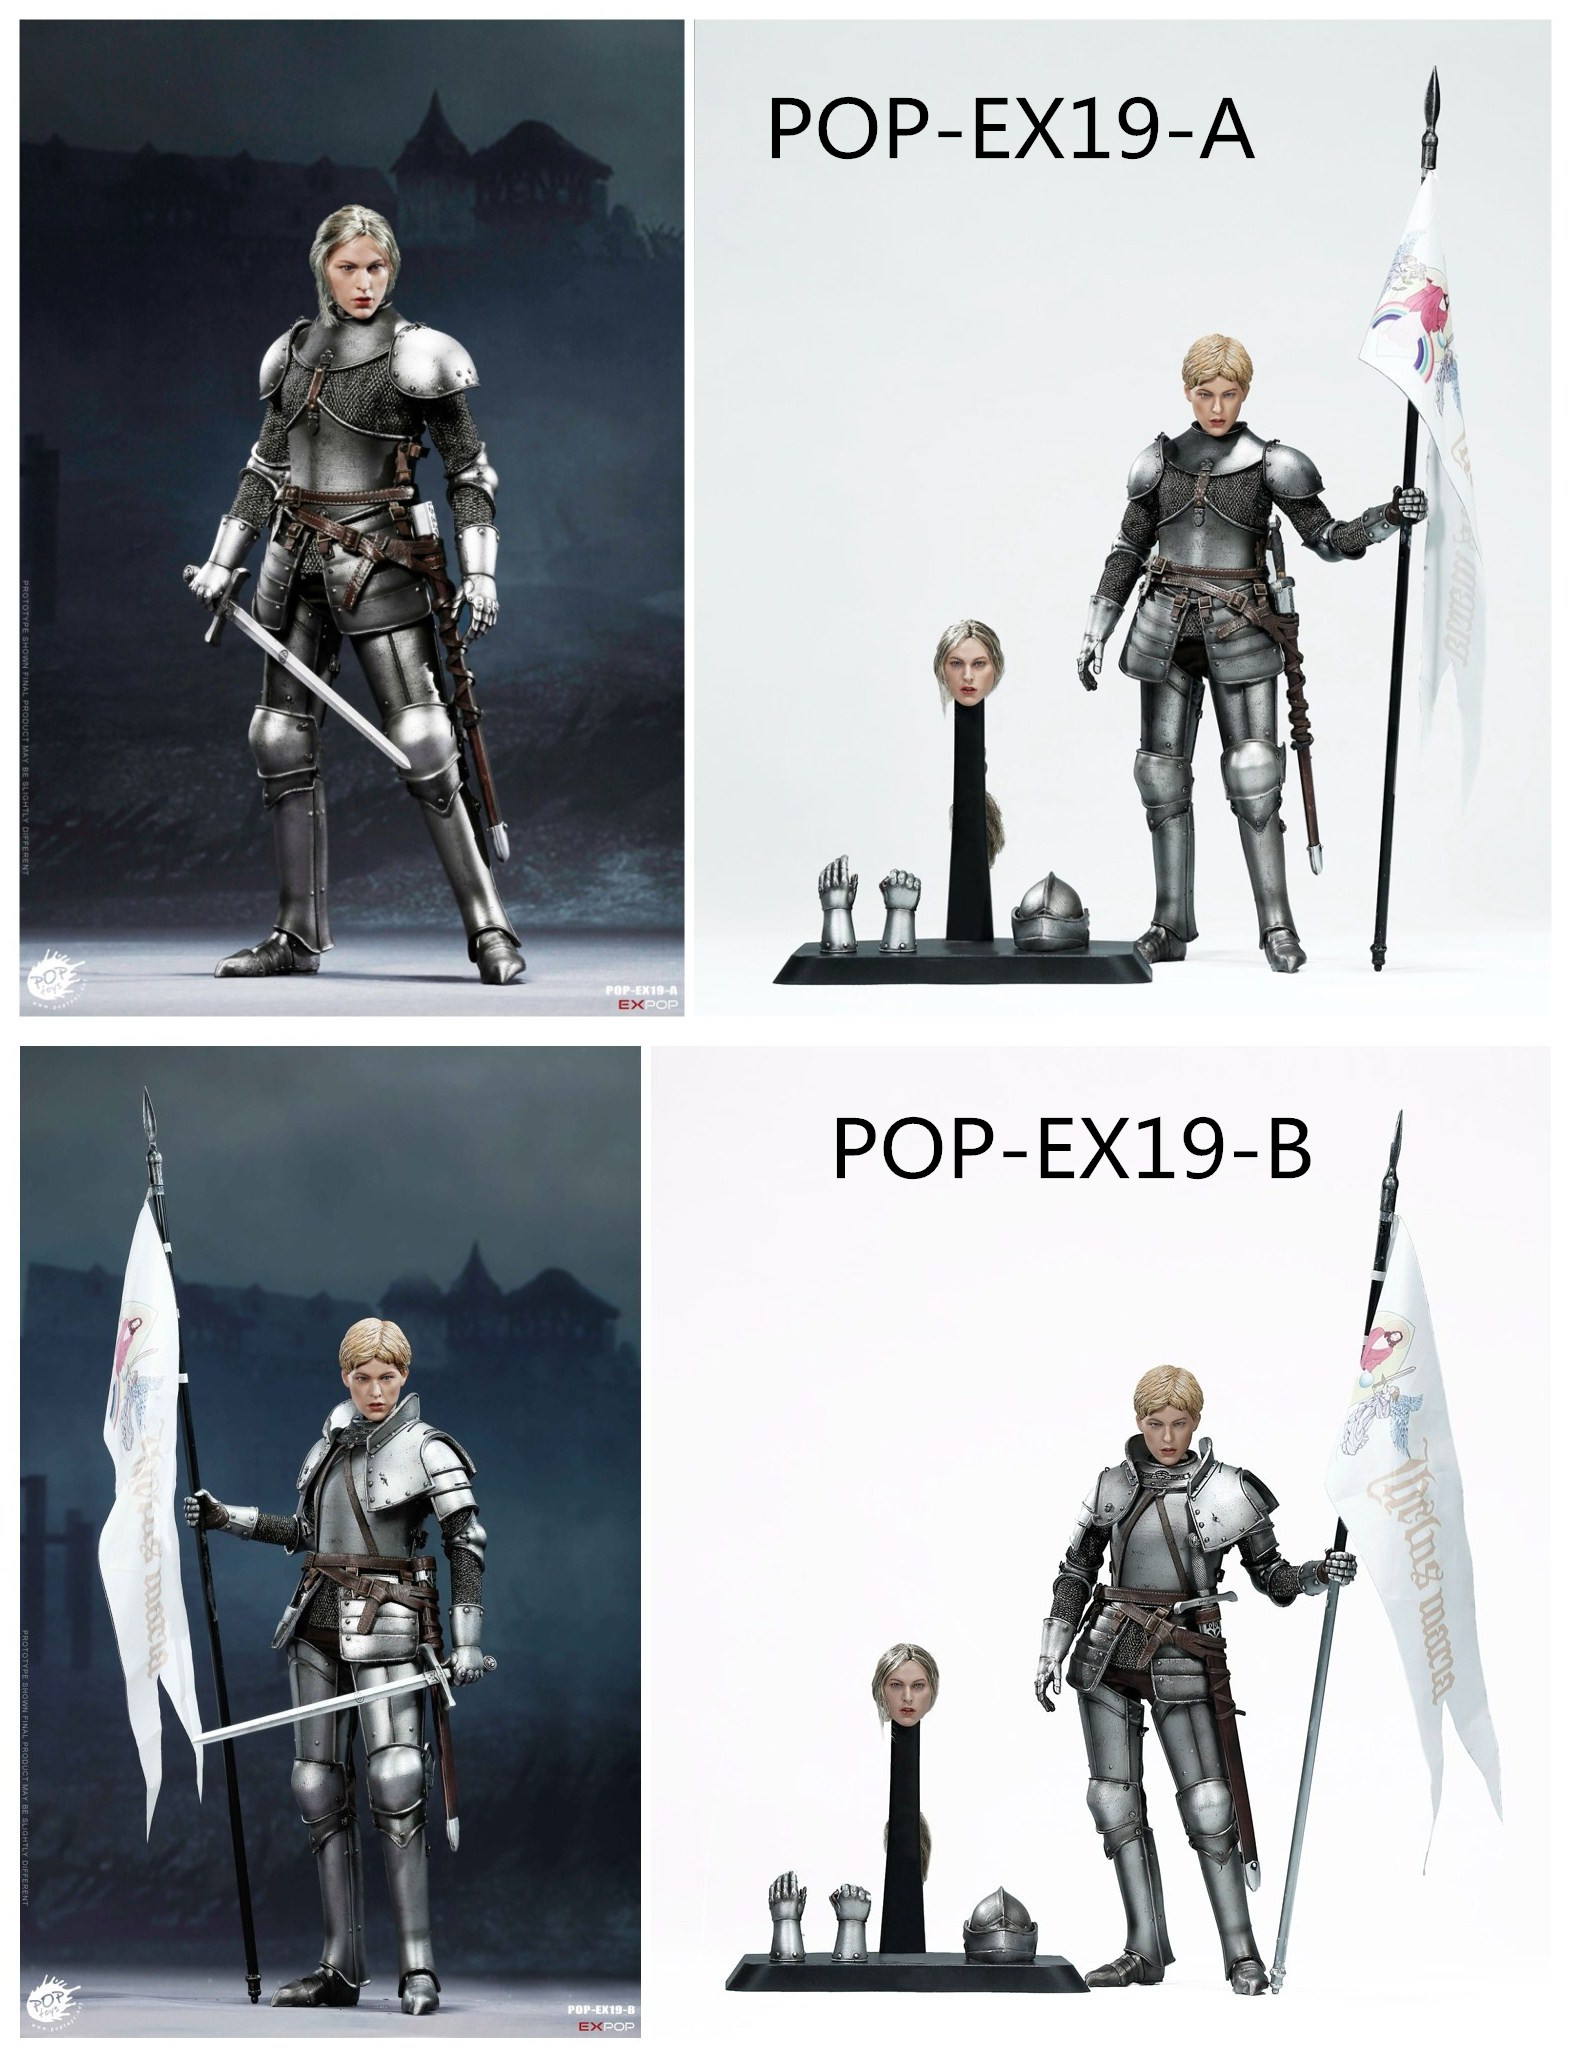 knight - NEW PRODUCT: POPTOYS New Products: 1/6 St. Knights - Assault Edition & Triumph Edition & Iron Armor (POP-EX19 ABC) 16565410